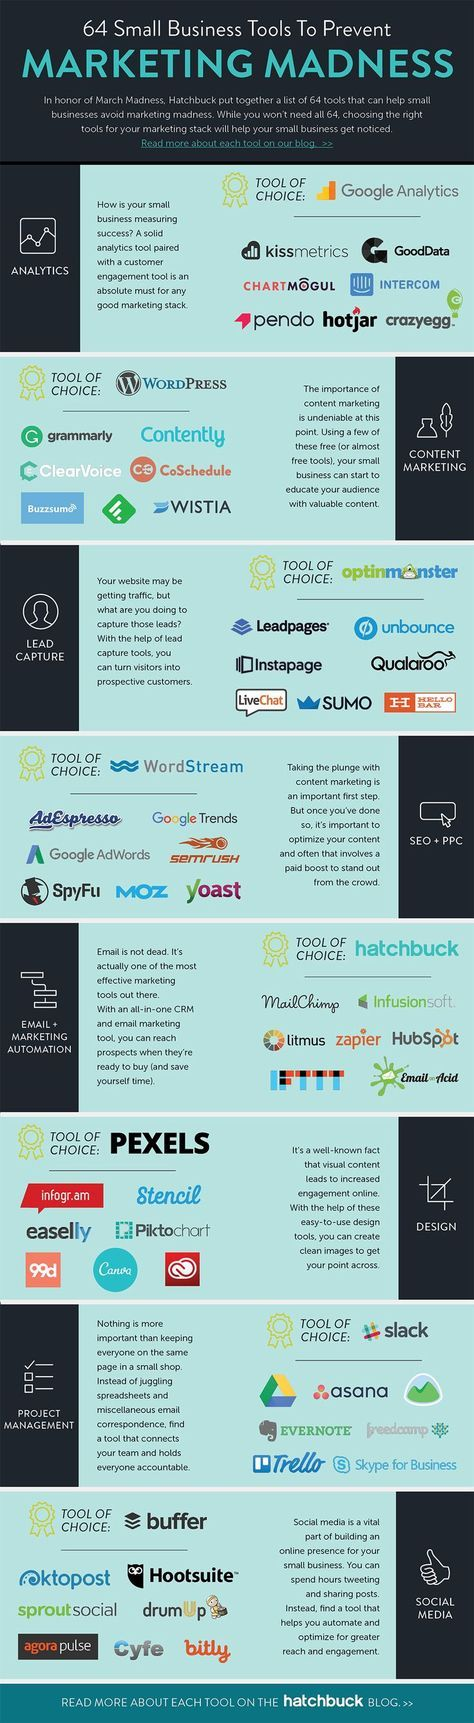 852 best diy social media marketing images on pinterest social 64 affordable small business marketing tools youd be mad not to try infographic solutioingenieria Choice Image